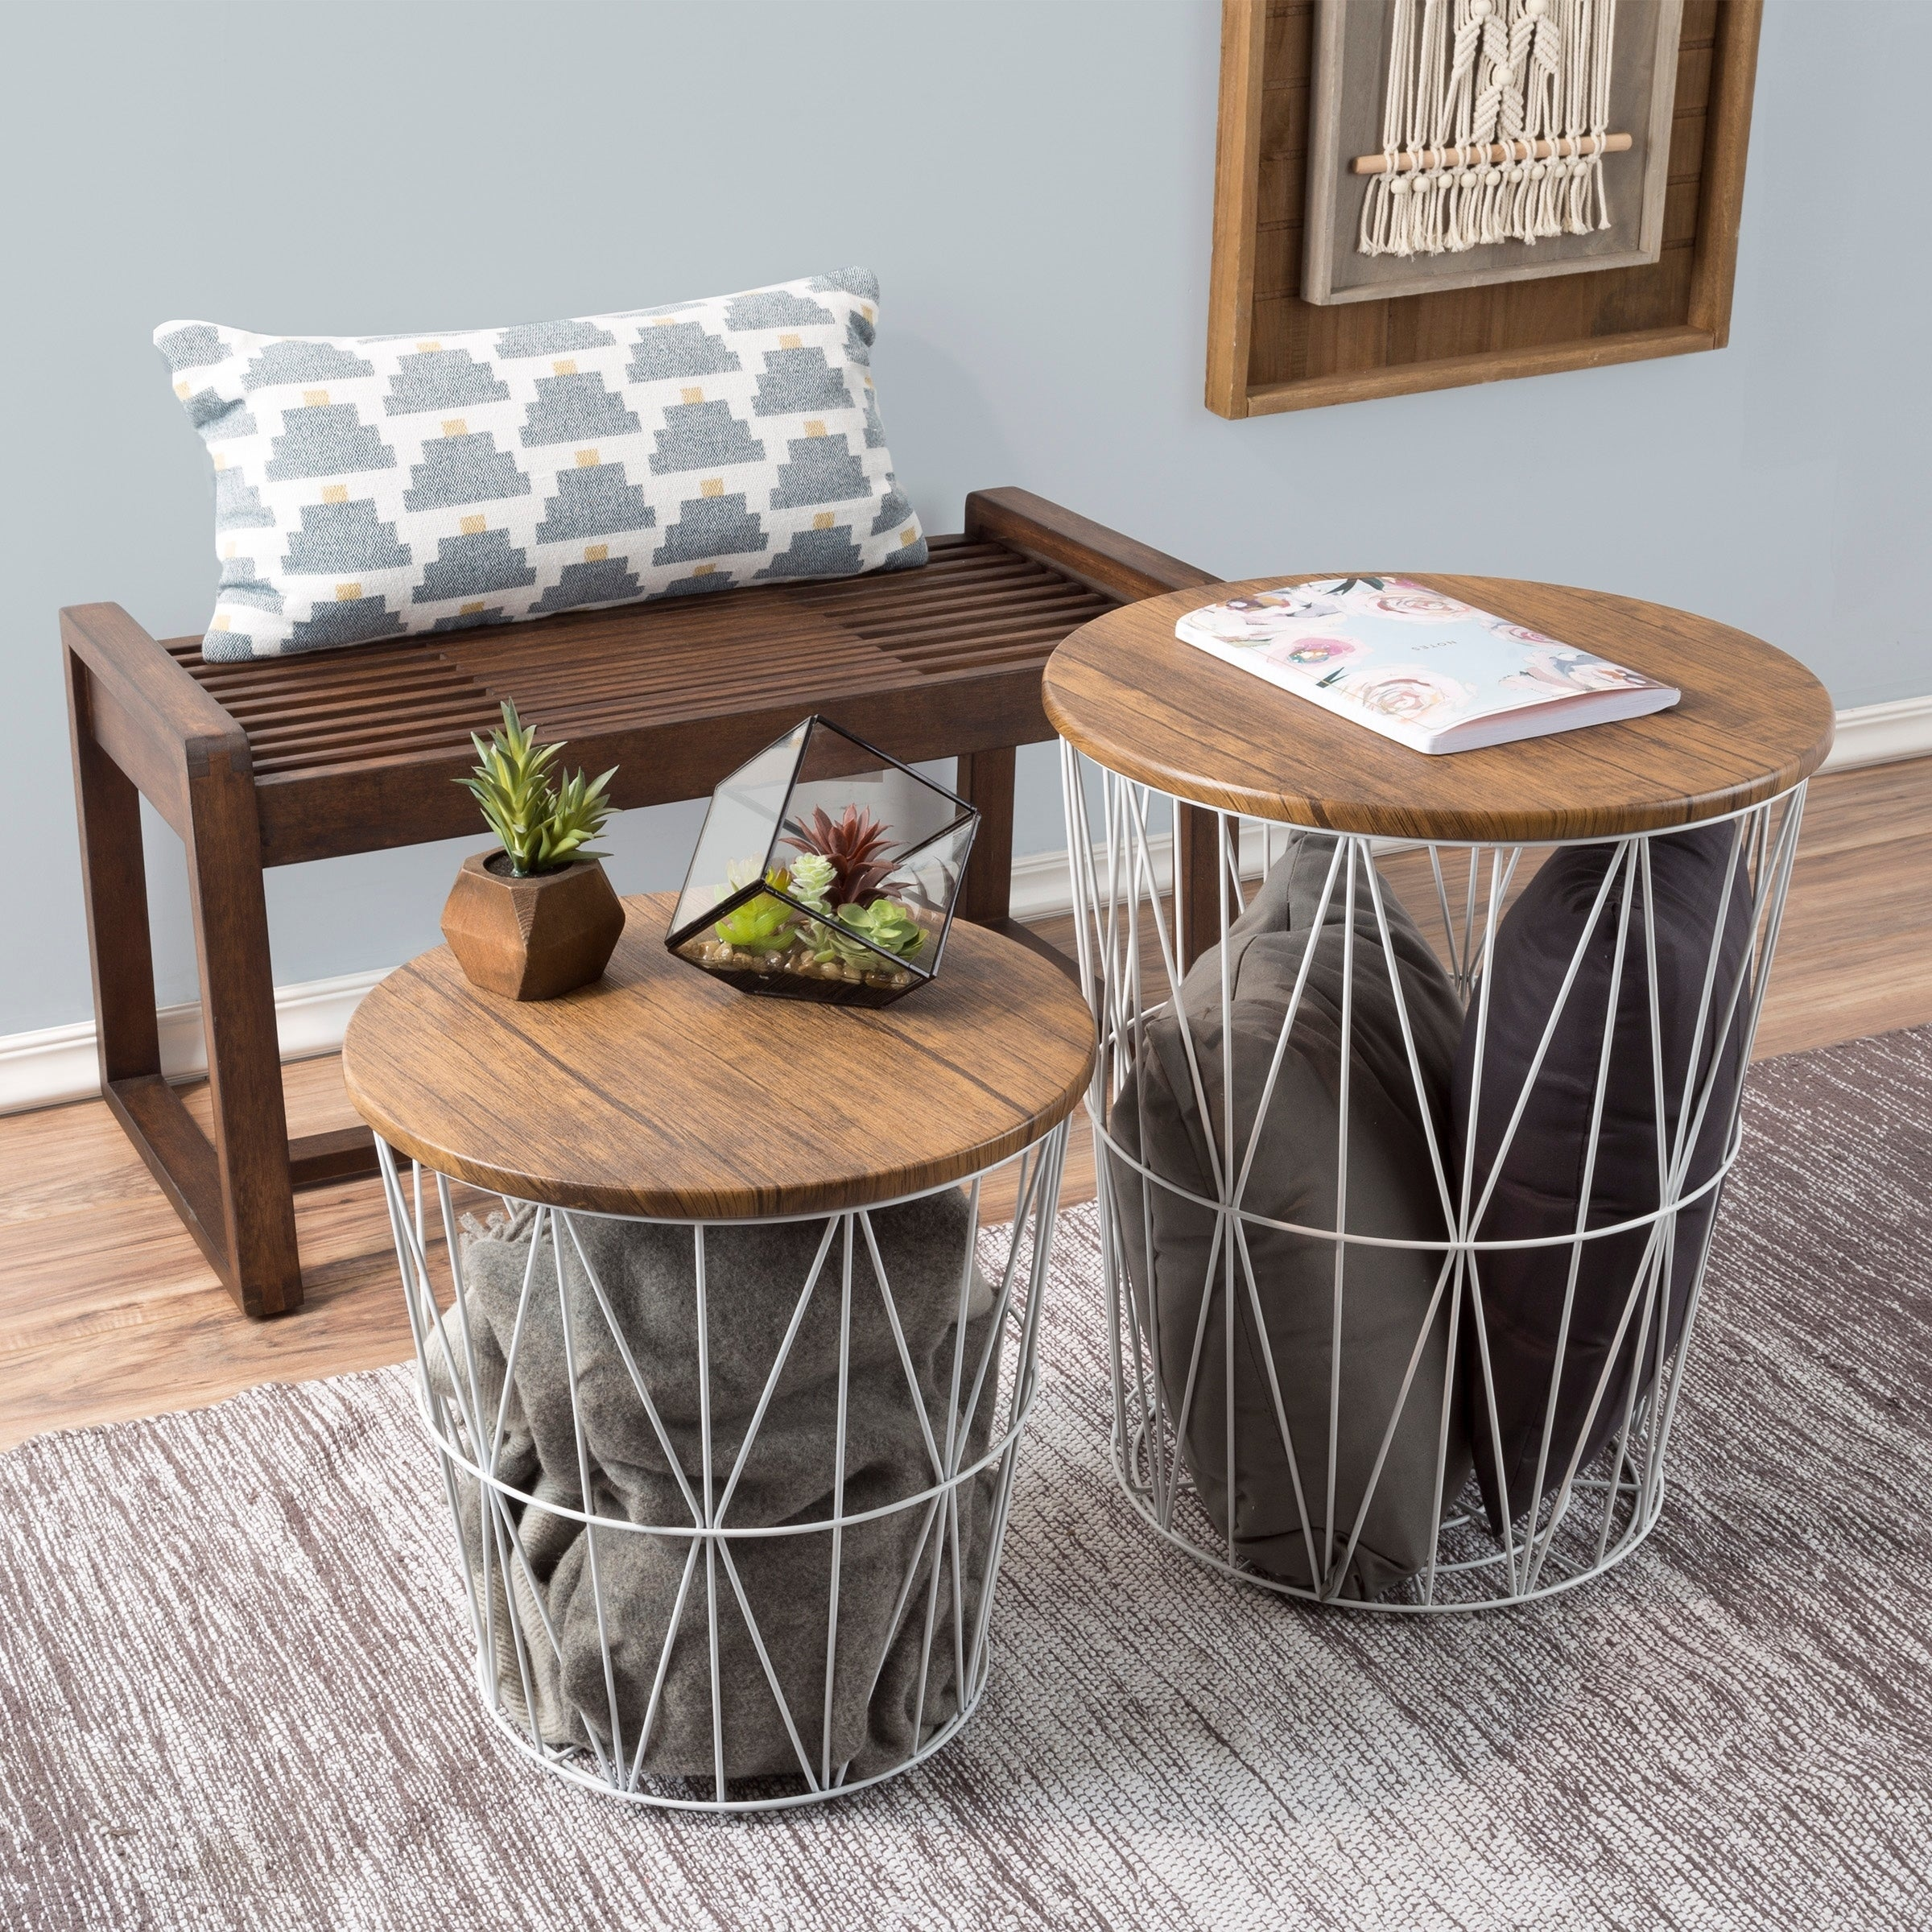 Shop Nesting End Tables With Storage  Set Of 2 Convertible Round Metal  Basket Veneer Wood Top Accent Side Tables By Lavish Home   On Sale   Free  Shipping ...